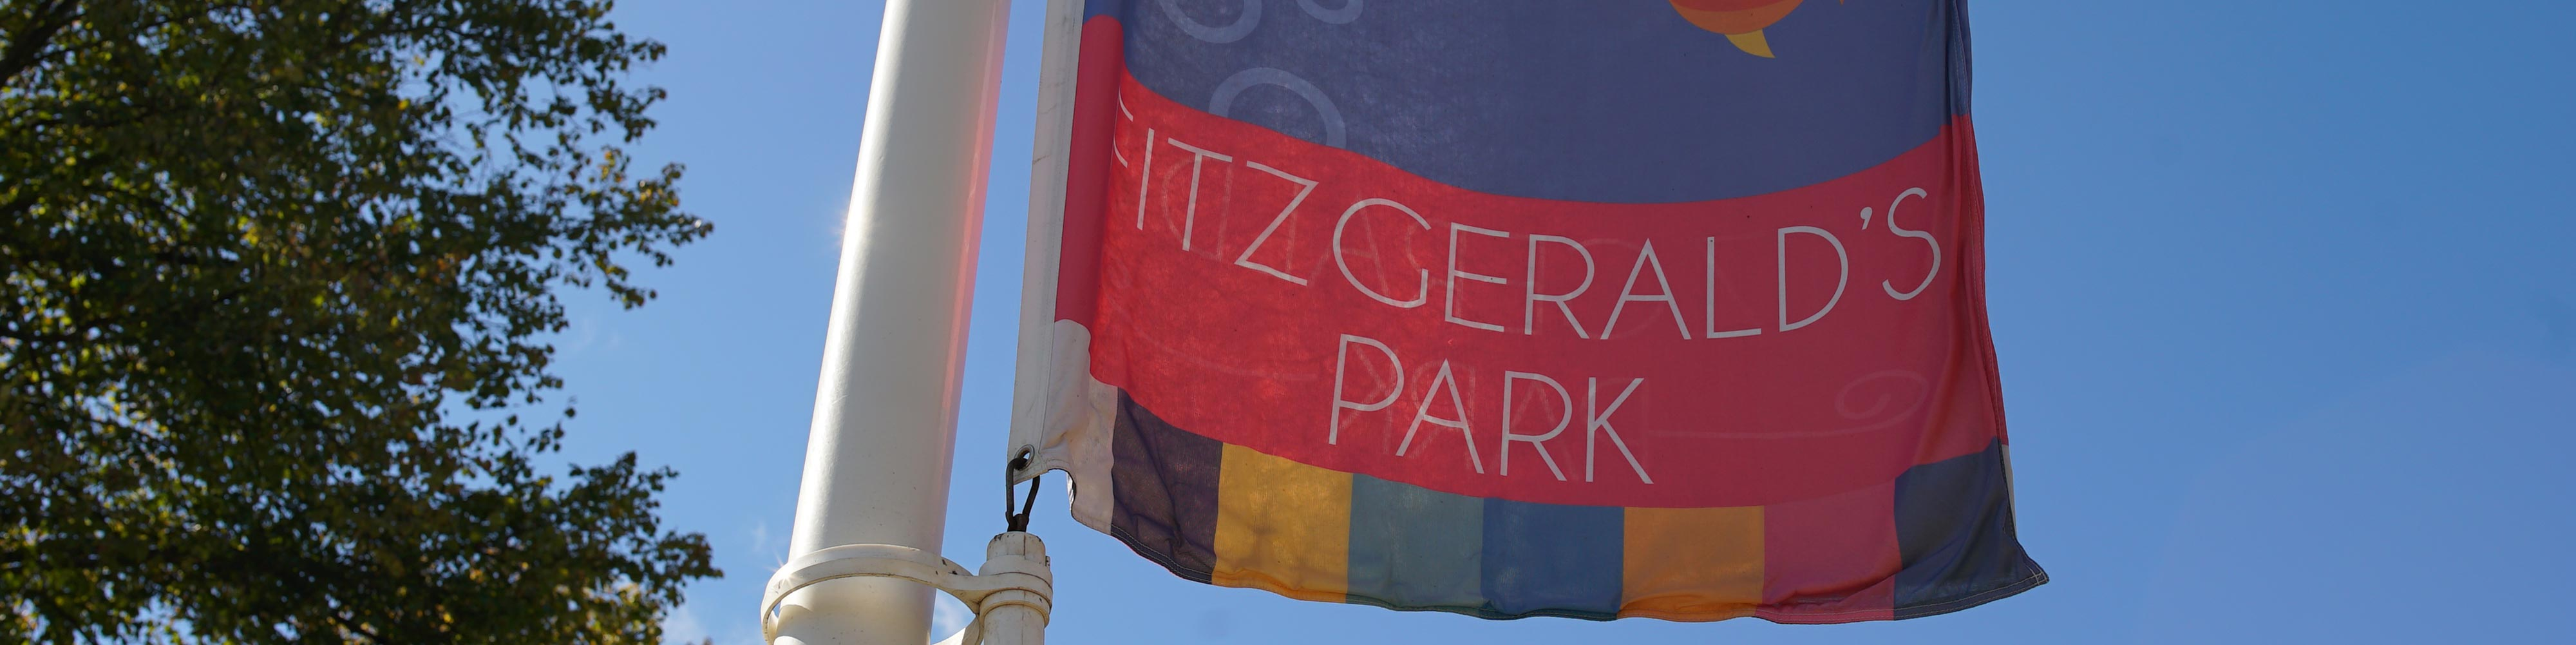 fitzgeralds park flag